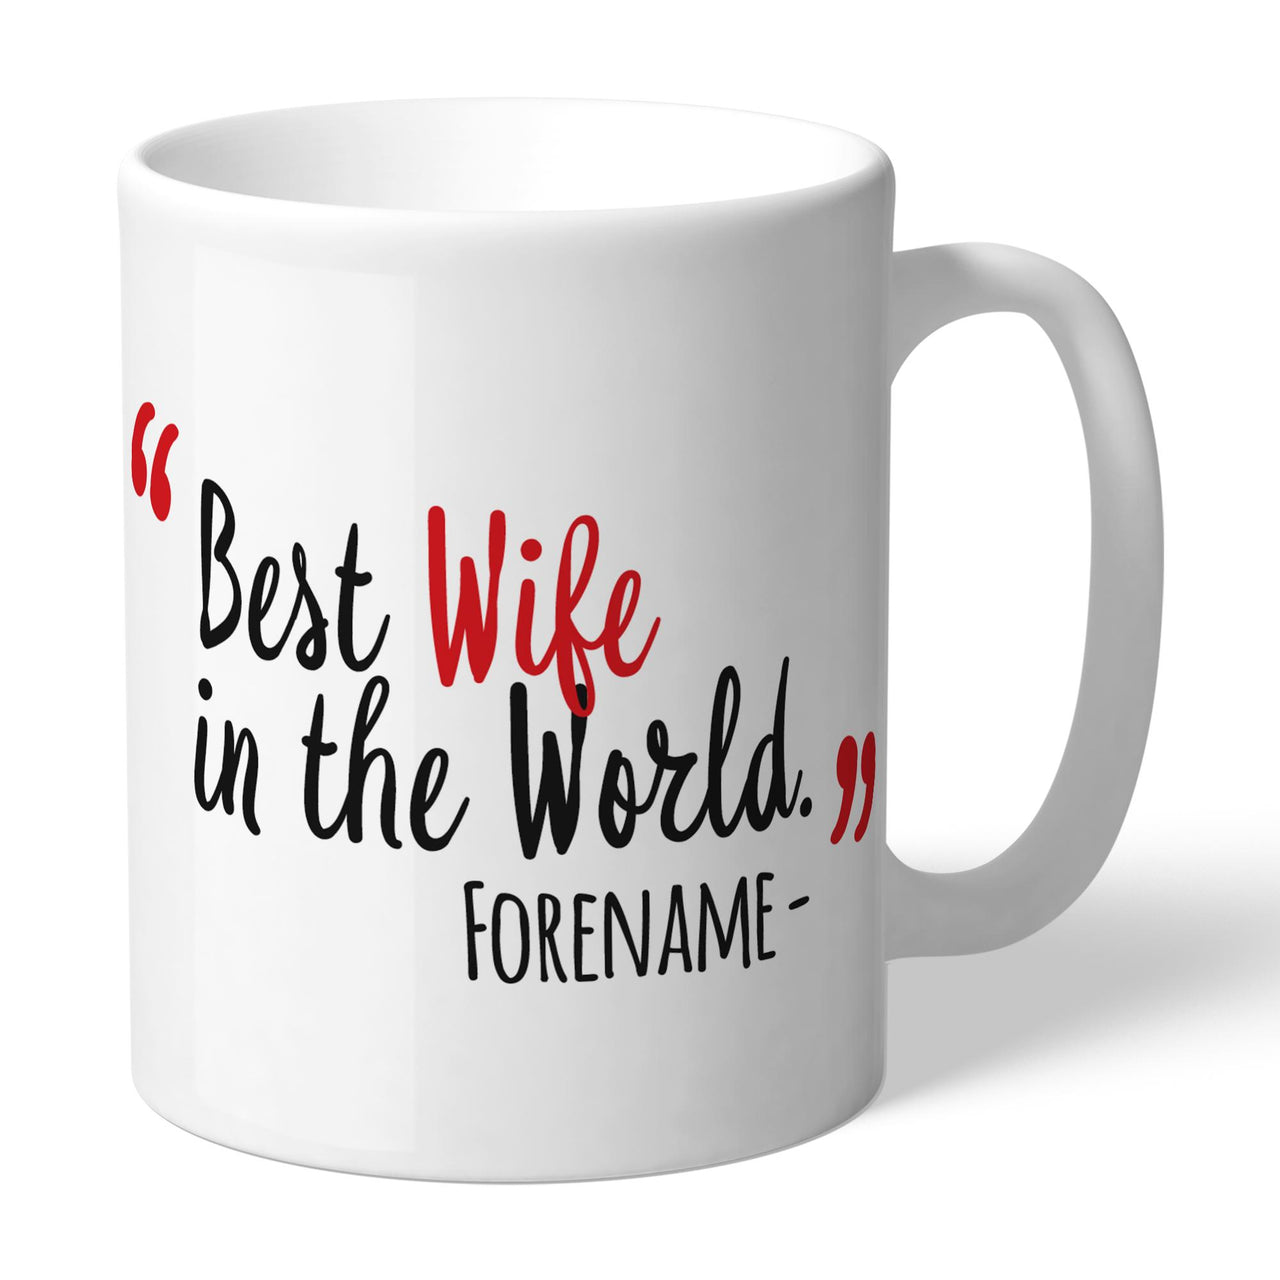 Southampton Best Wife In The World Mugs, Gifts